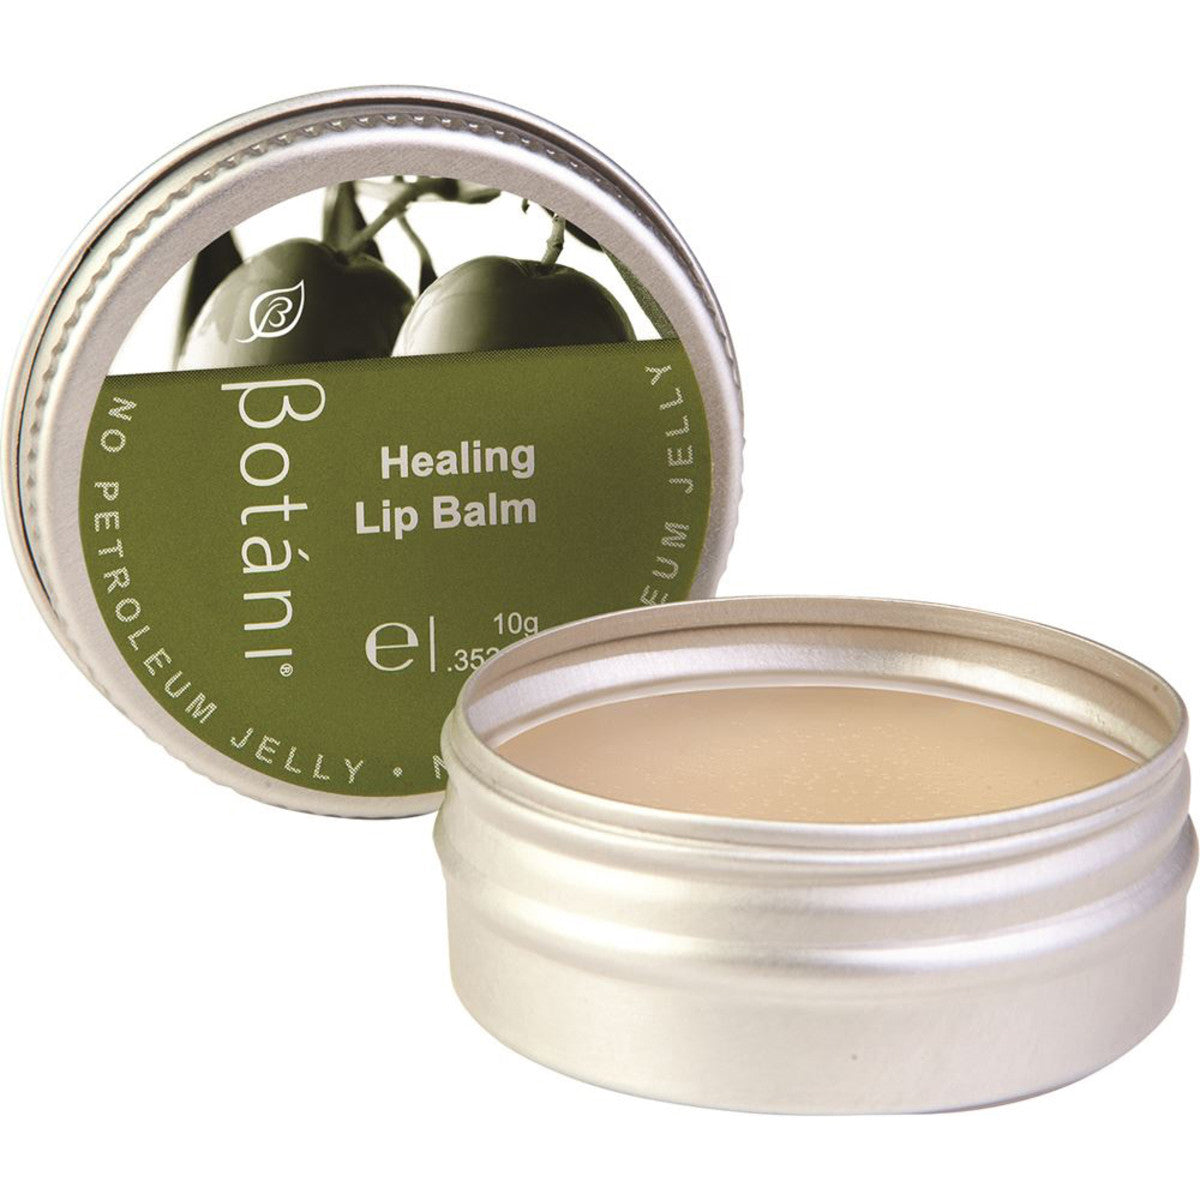 Botani healing lip balm 10g australian organic products - Bathroom items that start with g ...